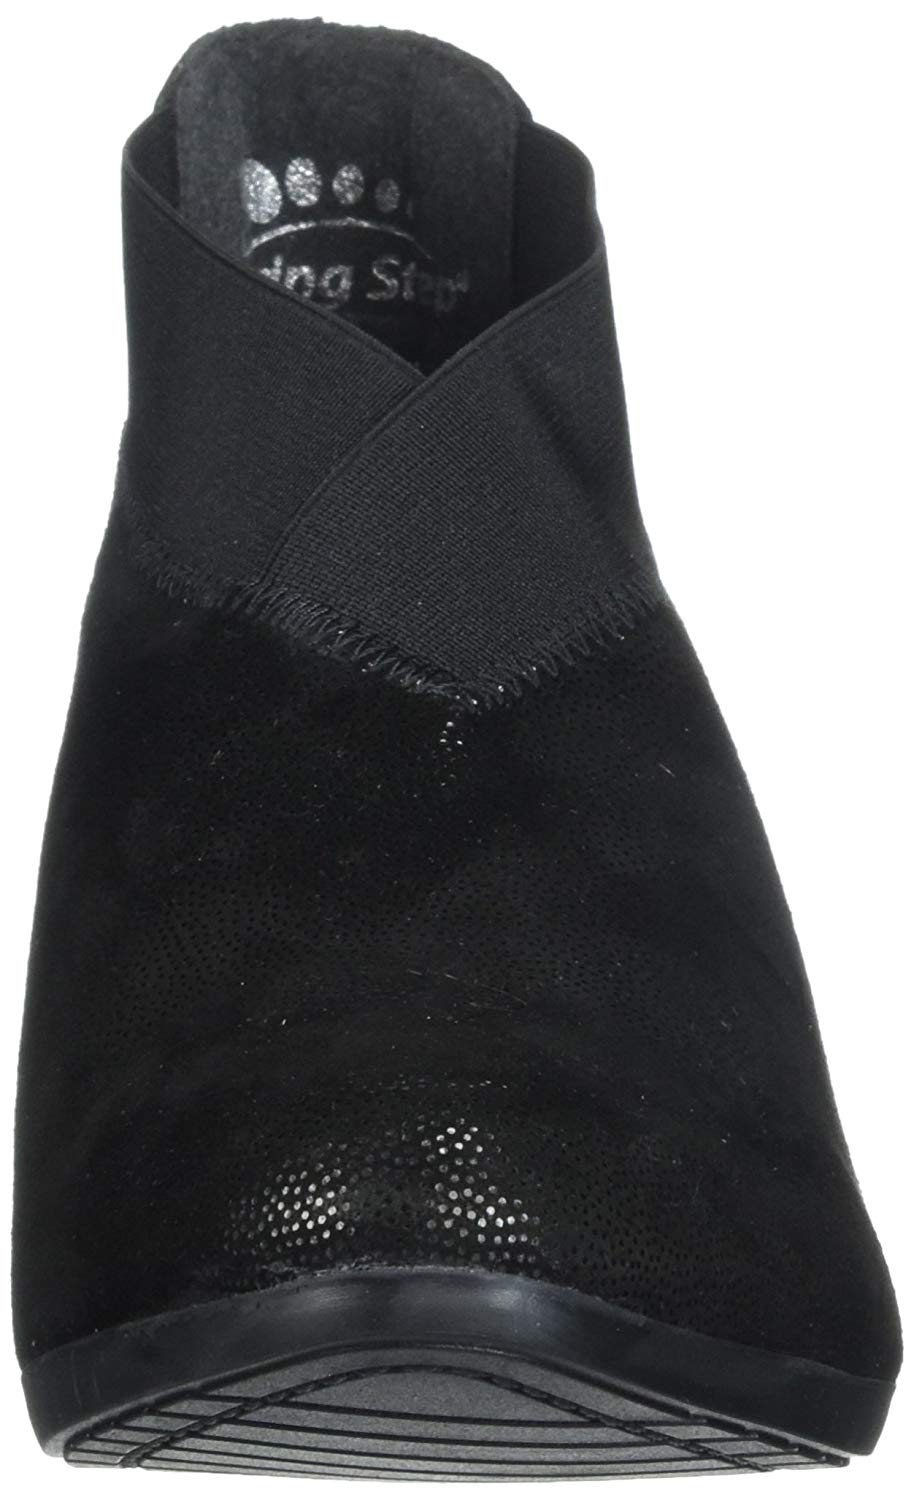 Spring Step Women's Endear Ankle Bootie, Black, Size 10.0